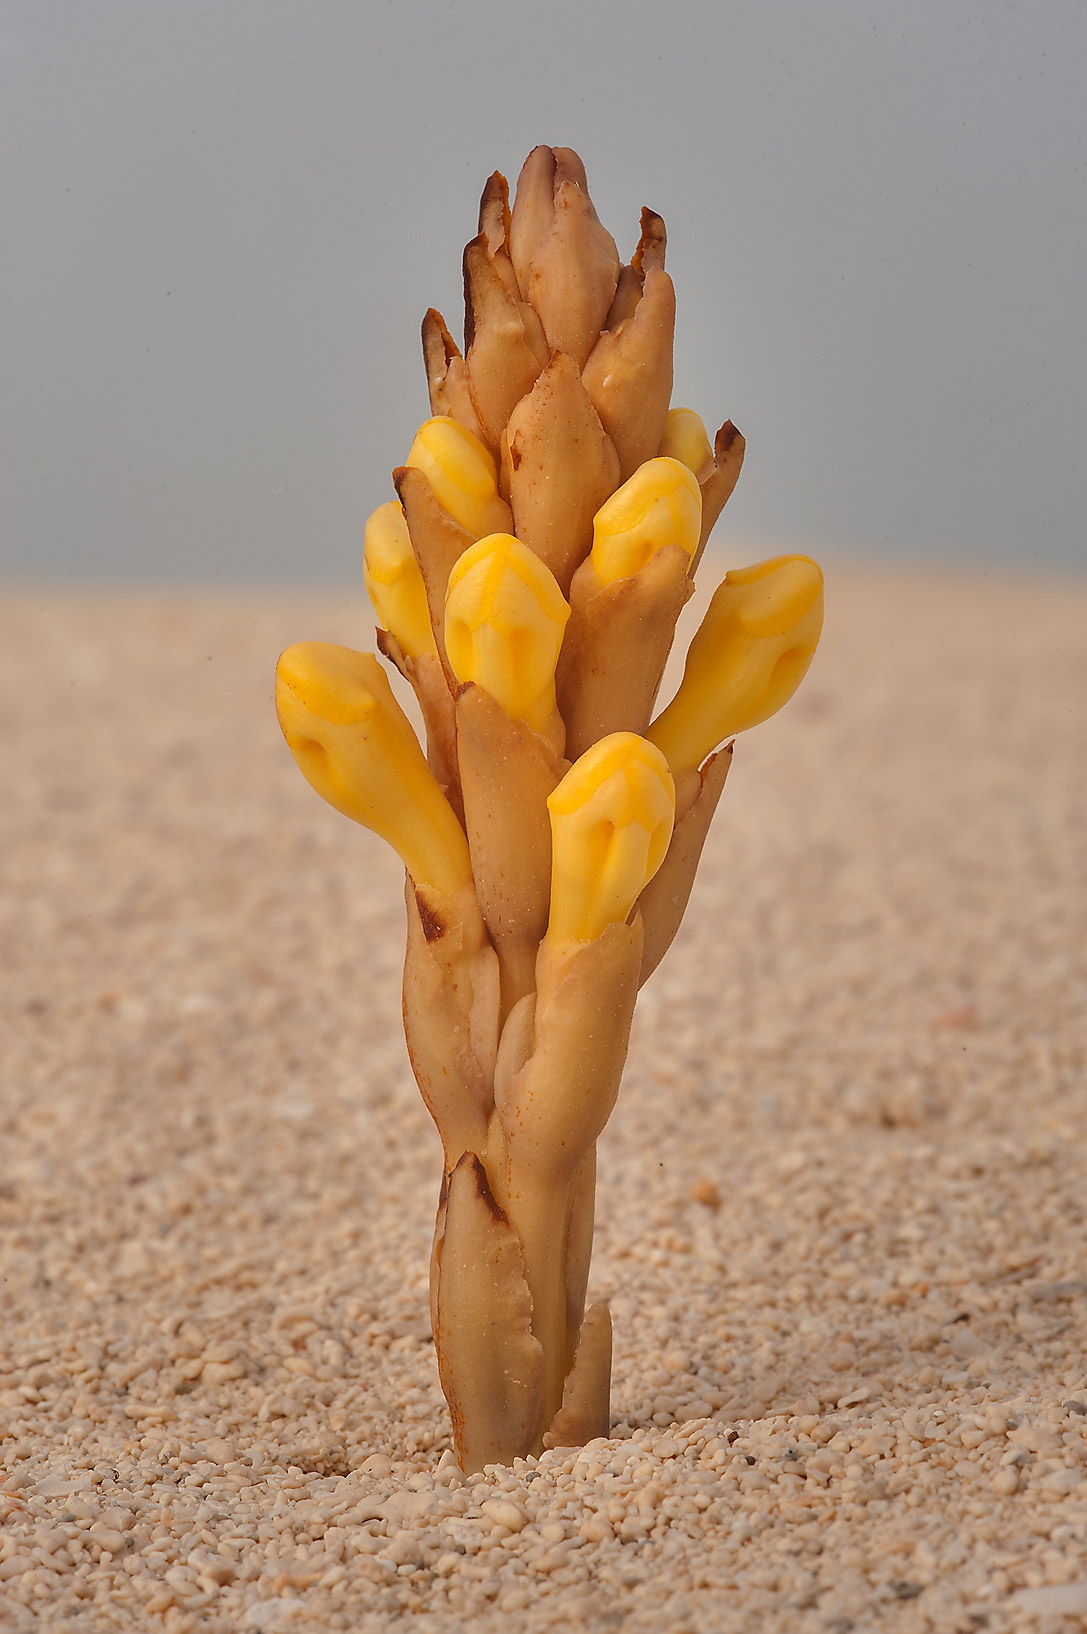 Flower of Cistanche tubulosa on sand of Umm Tays Island in Madinat Al Shamal area. Qatar